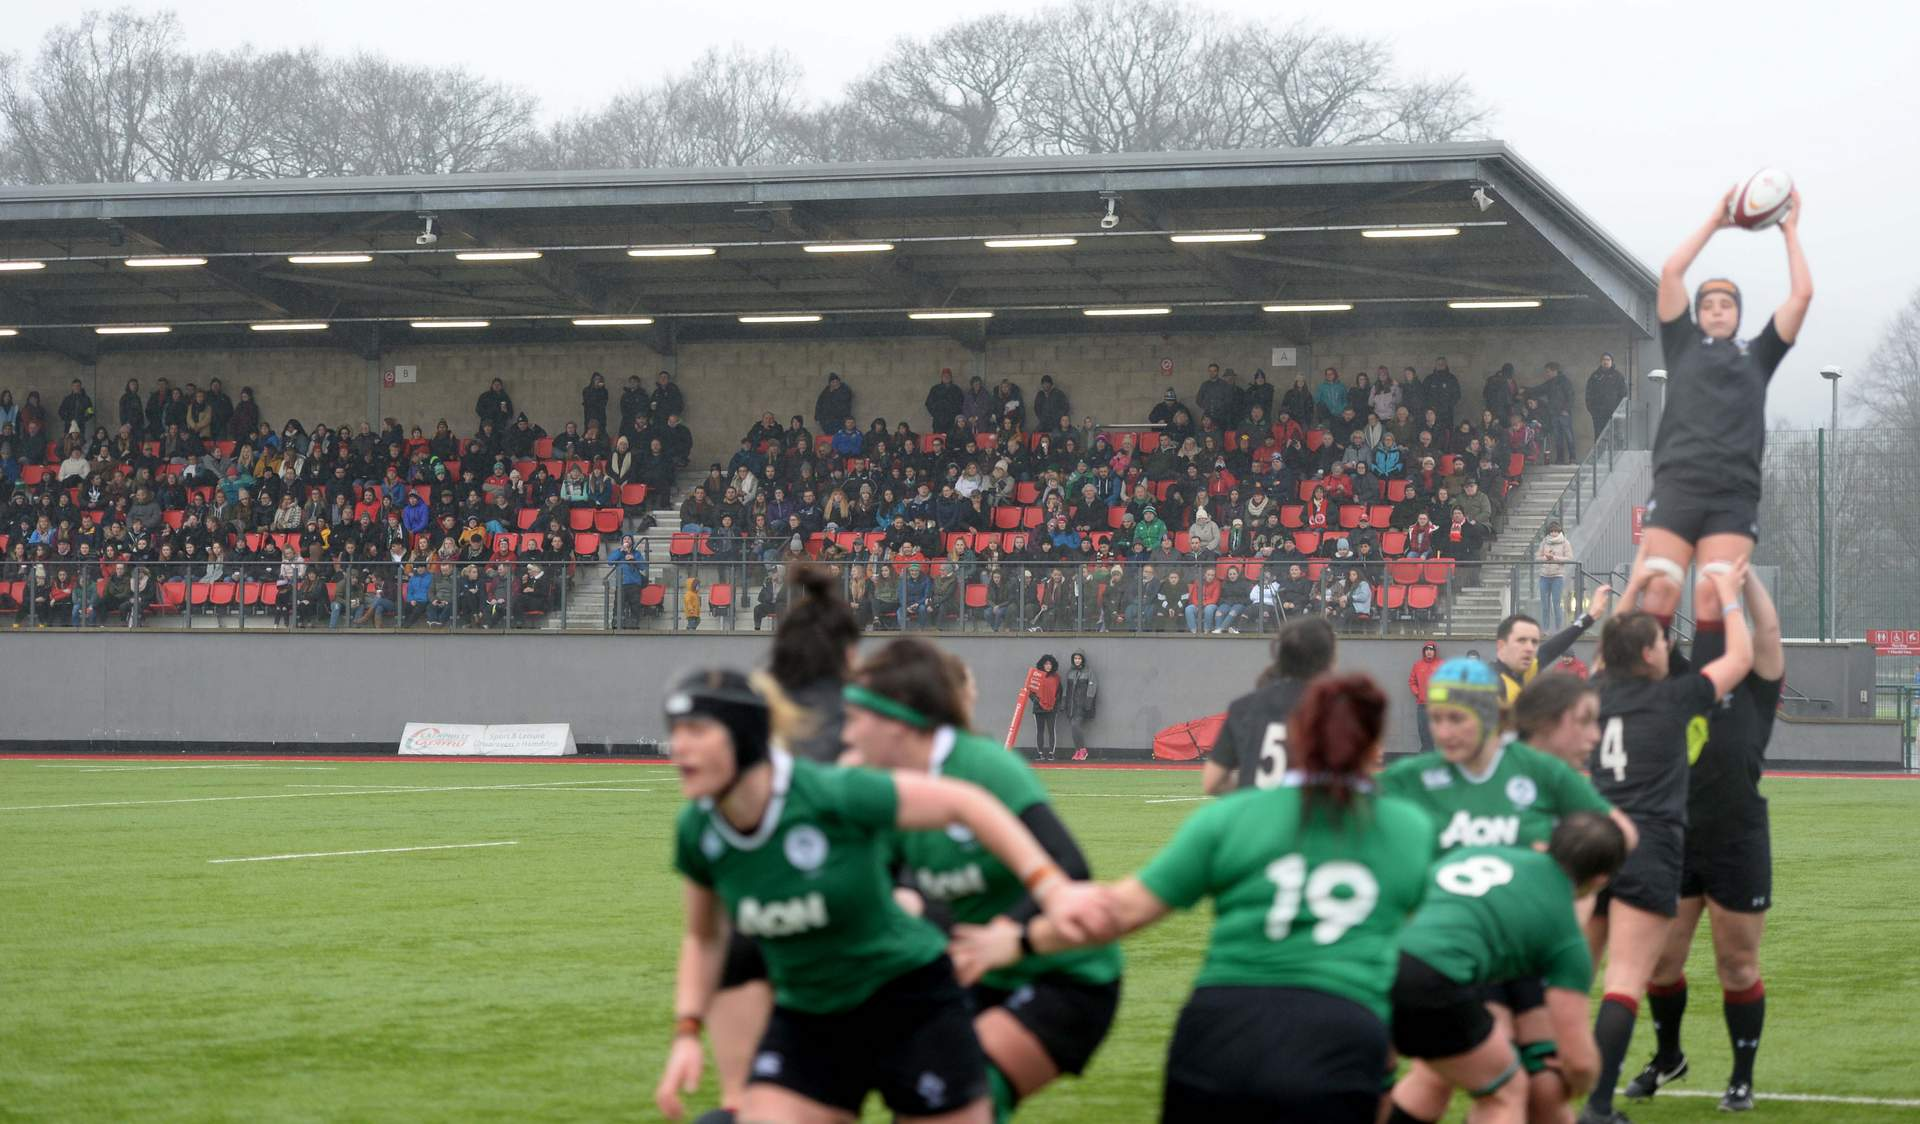 Ireland edge Wales in Women's Six Nations warm-up